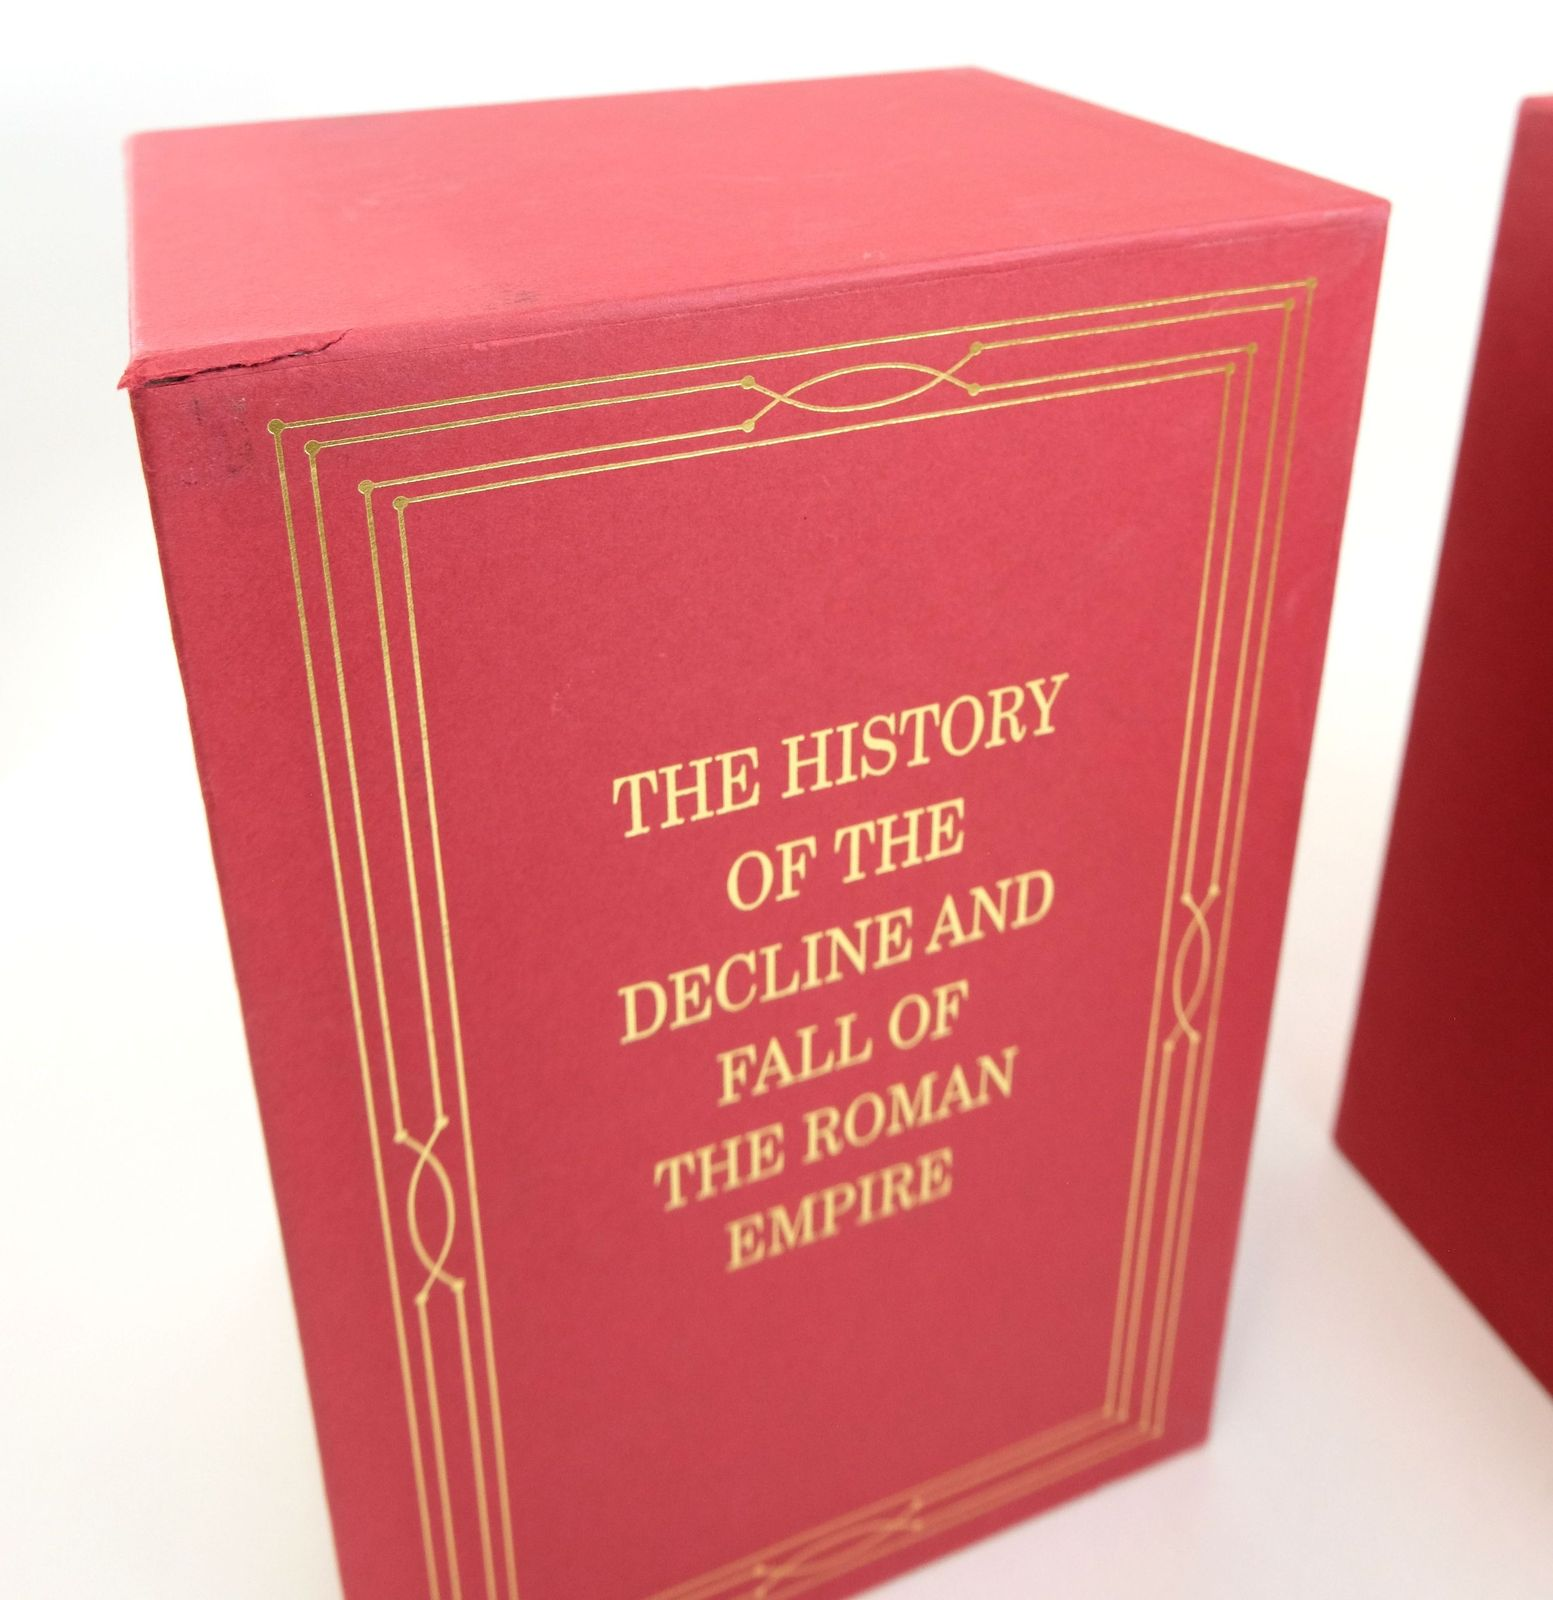 Photo of THE HISTORY OF THE DECLINE AND FALL OF THE ROMAN EMPIRE (8 VOLUMES) written by Gibbon, Edward published by Folio Society (STOCK CODE: 1819240)  for sale by Stella & Rose's Books